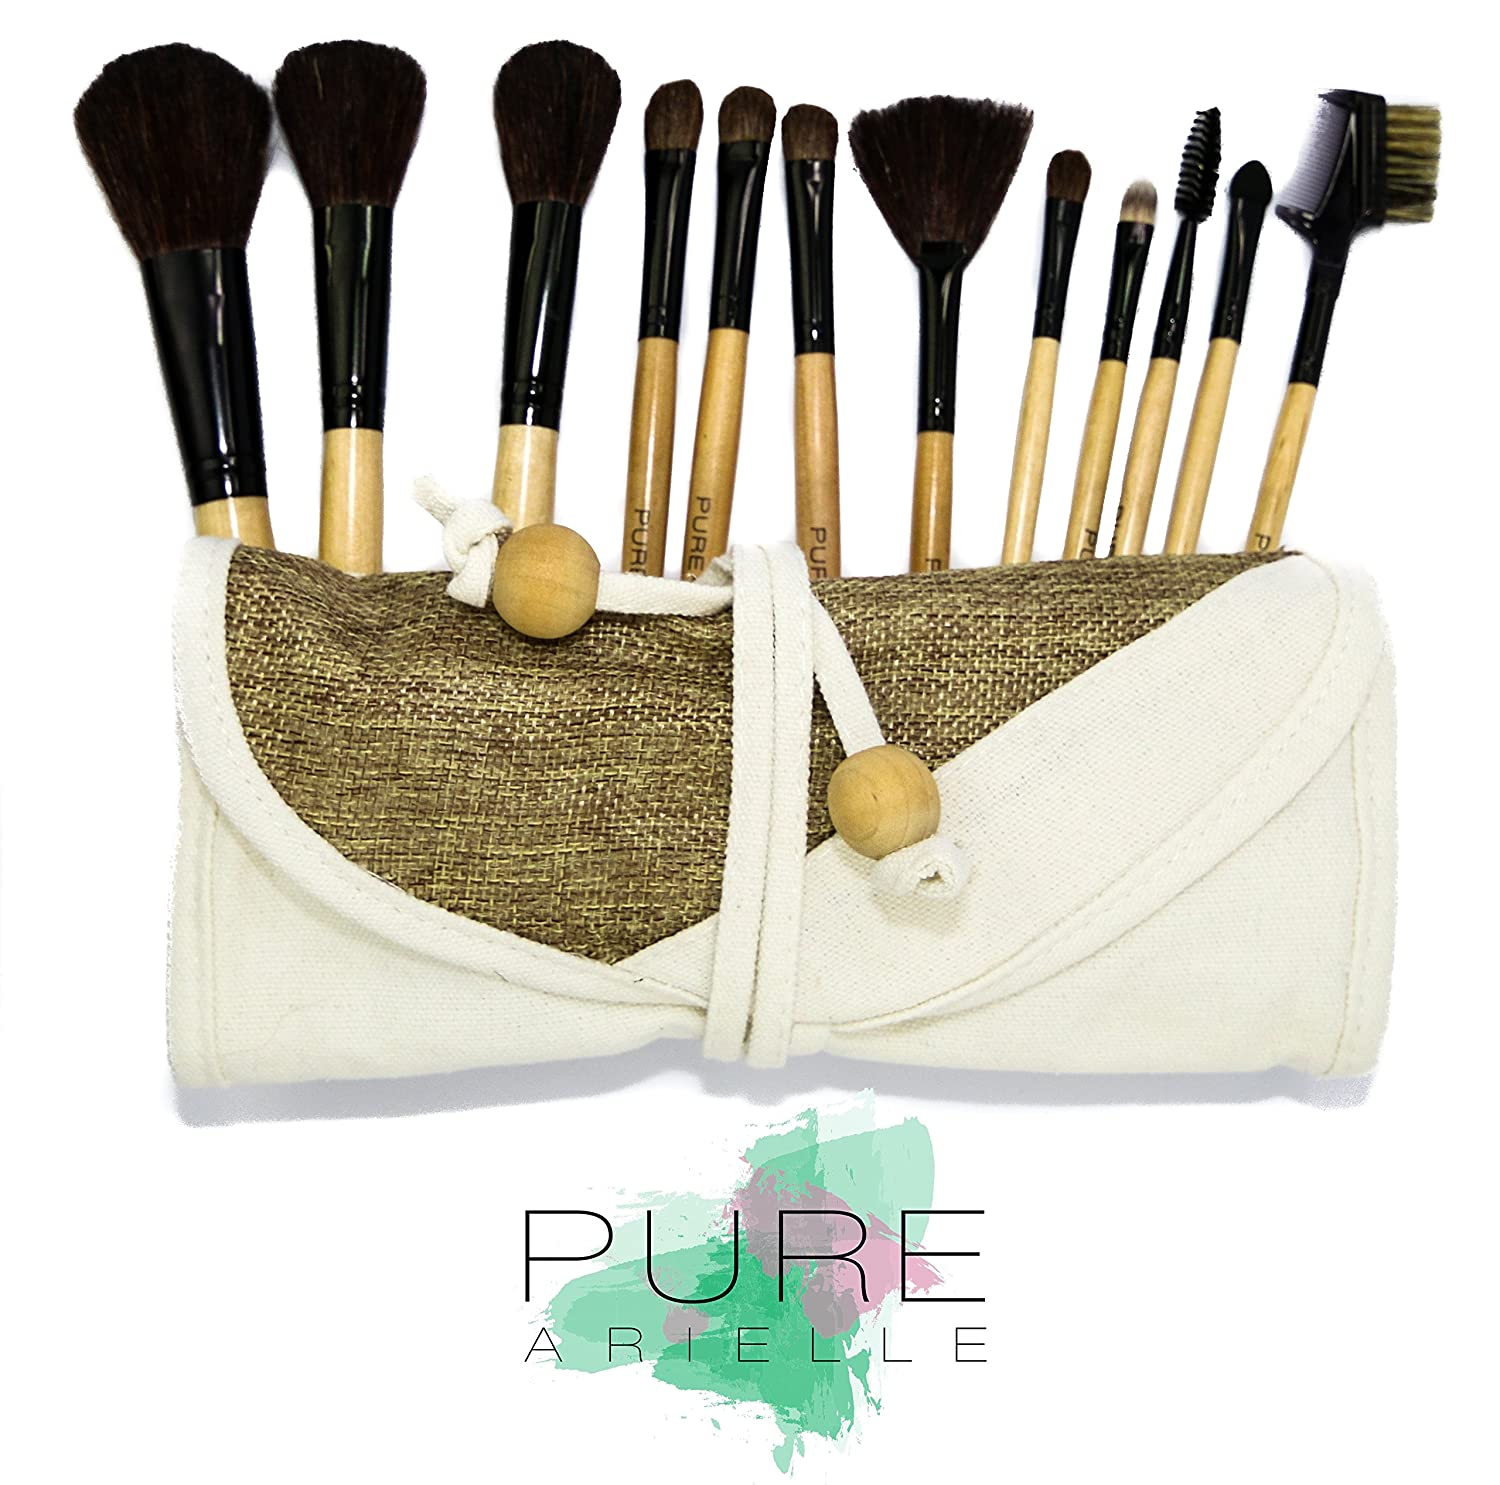 amazon com pure arielle 12 piece all natural makeup brush set amazon com pure arielle 12 piece all natural makeup brush set bamboo handle pcs stylish make up brushes set includes free cloth organizer case bag